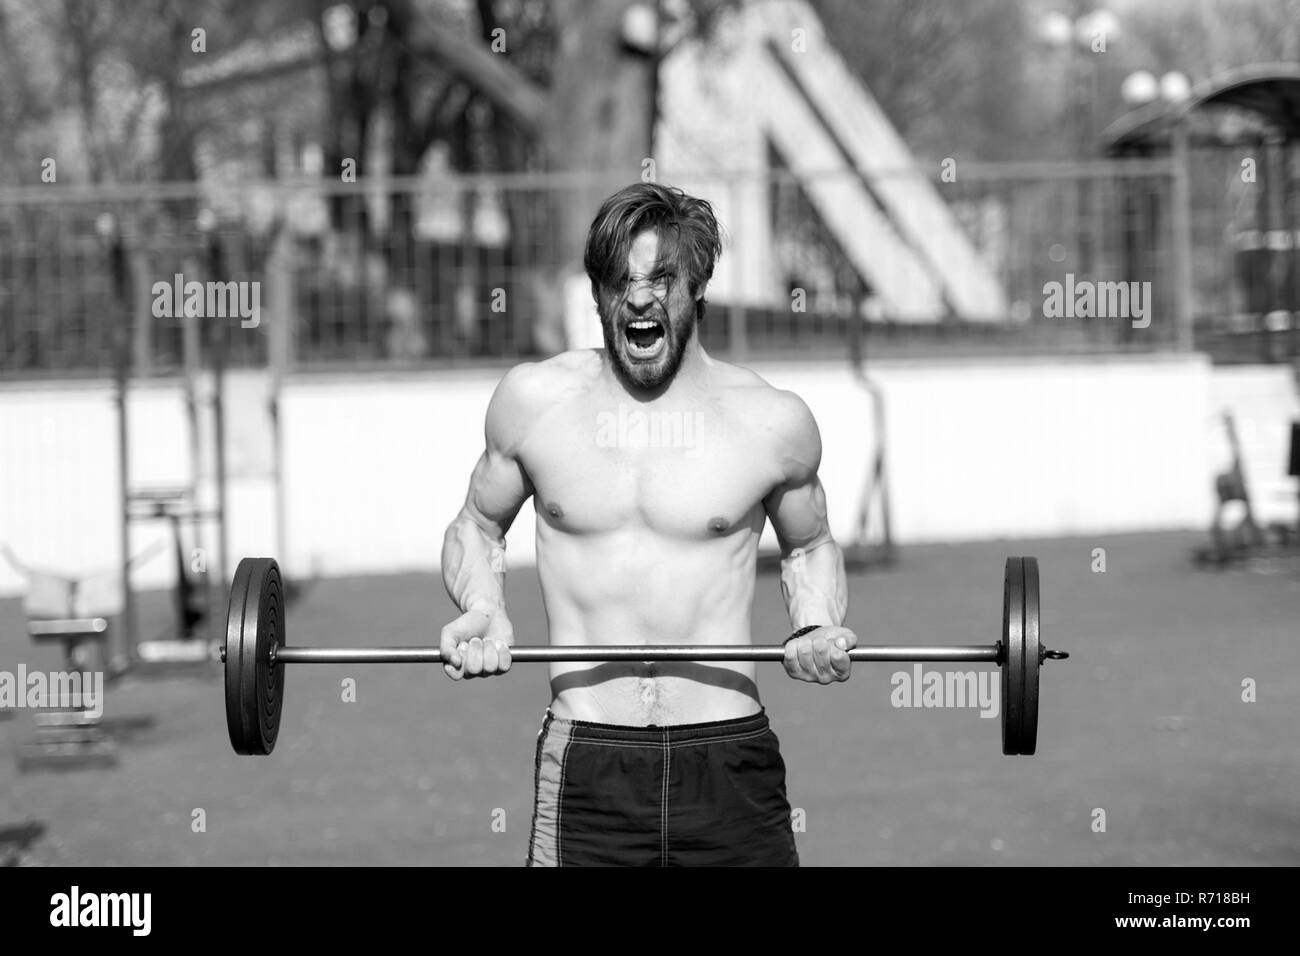 Sportsman lift barbell on stadium. Man with athletic torso, strong arms. Athlete shout training with weight. Weightlifting, bodybuilding, fitness, sport. Power, energy, strength concept - Stock Image